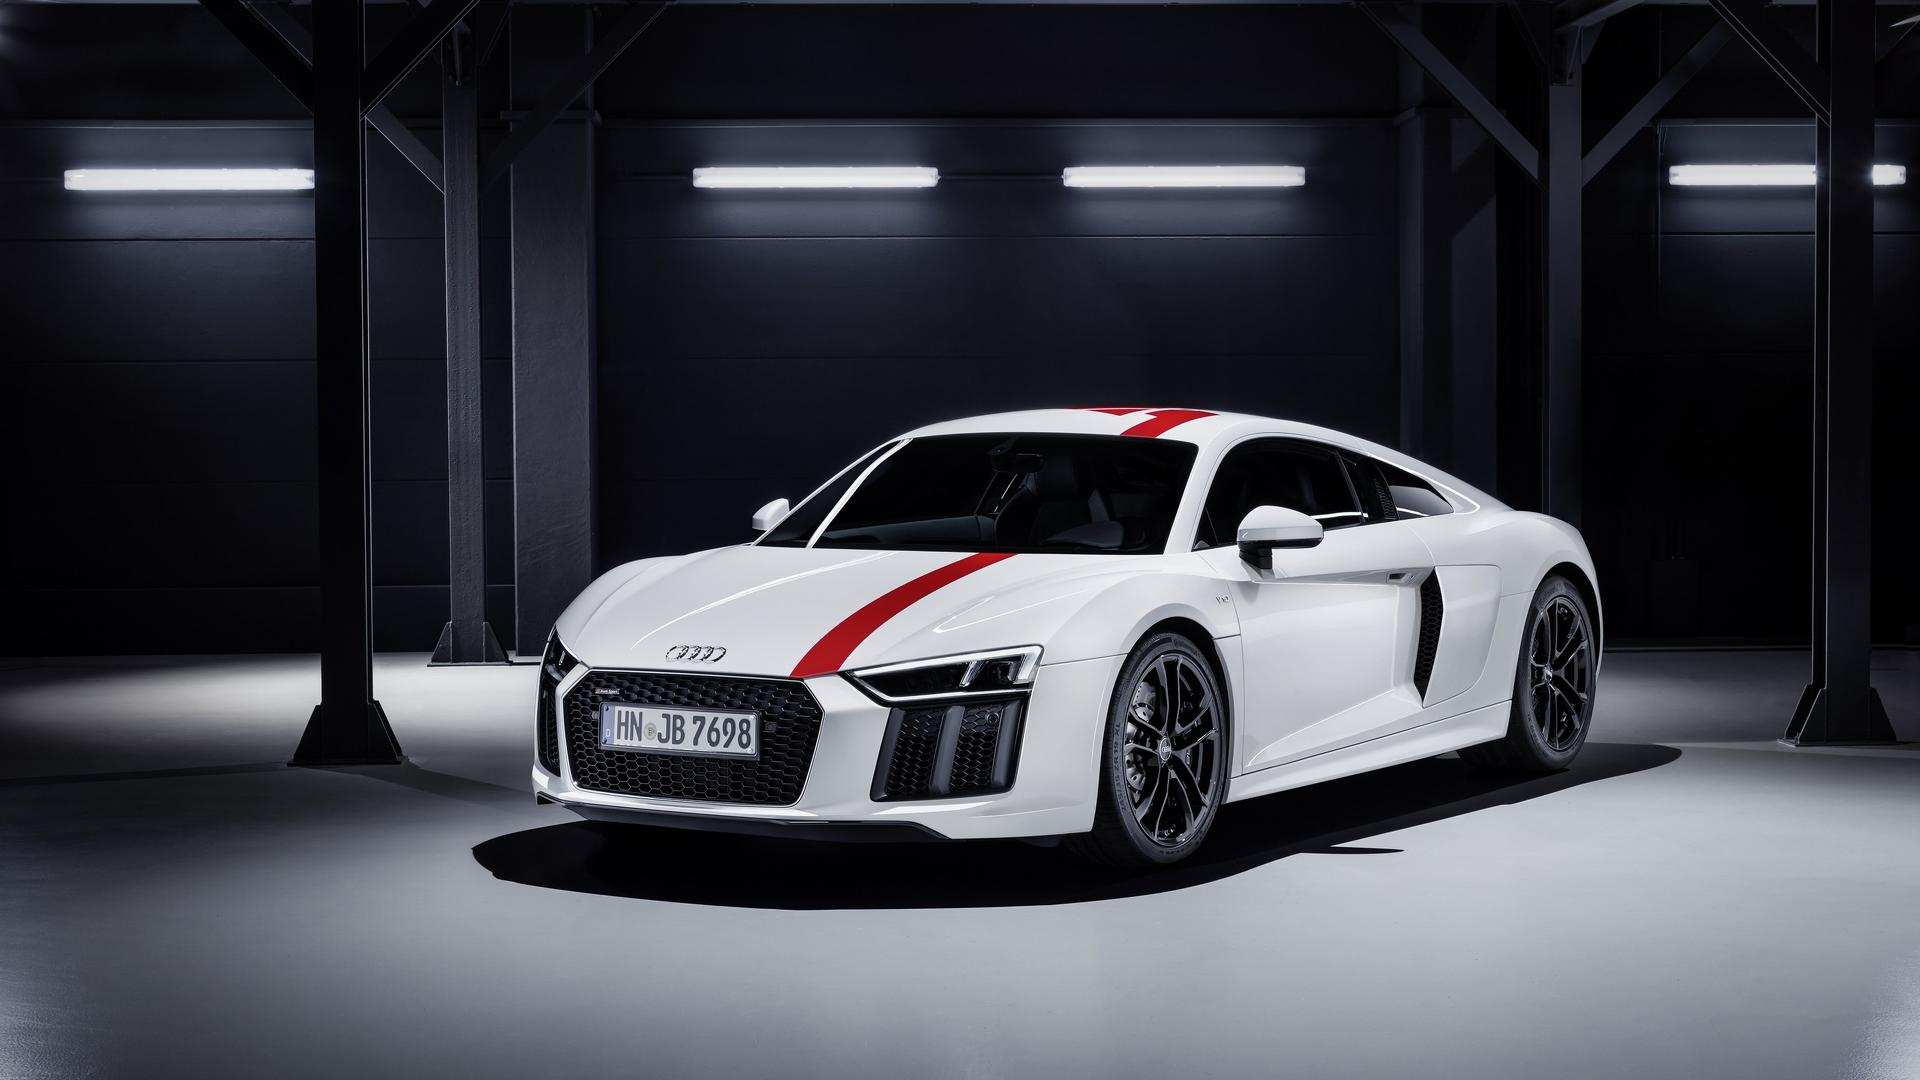 63 Gallery of 2020 Audi R8 Prices with 2020 Audi R8